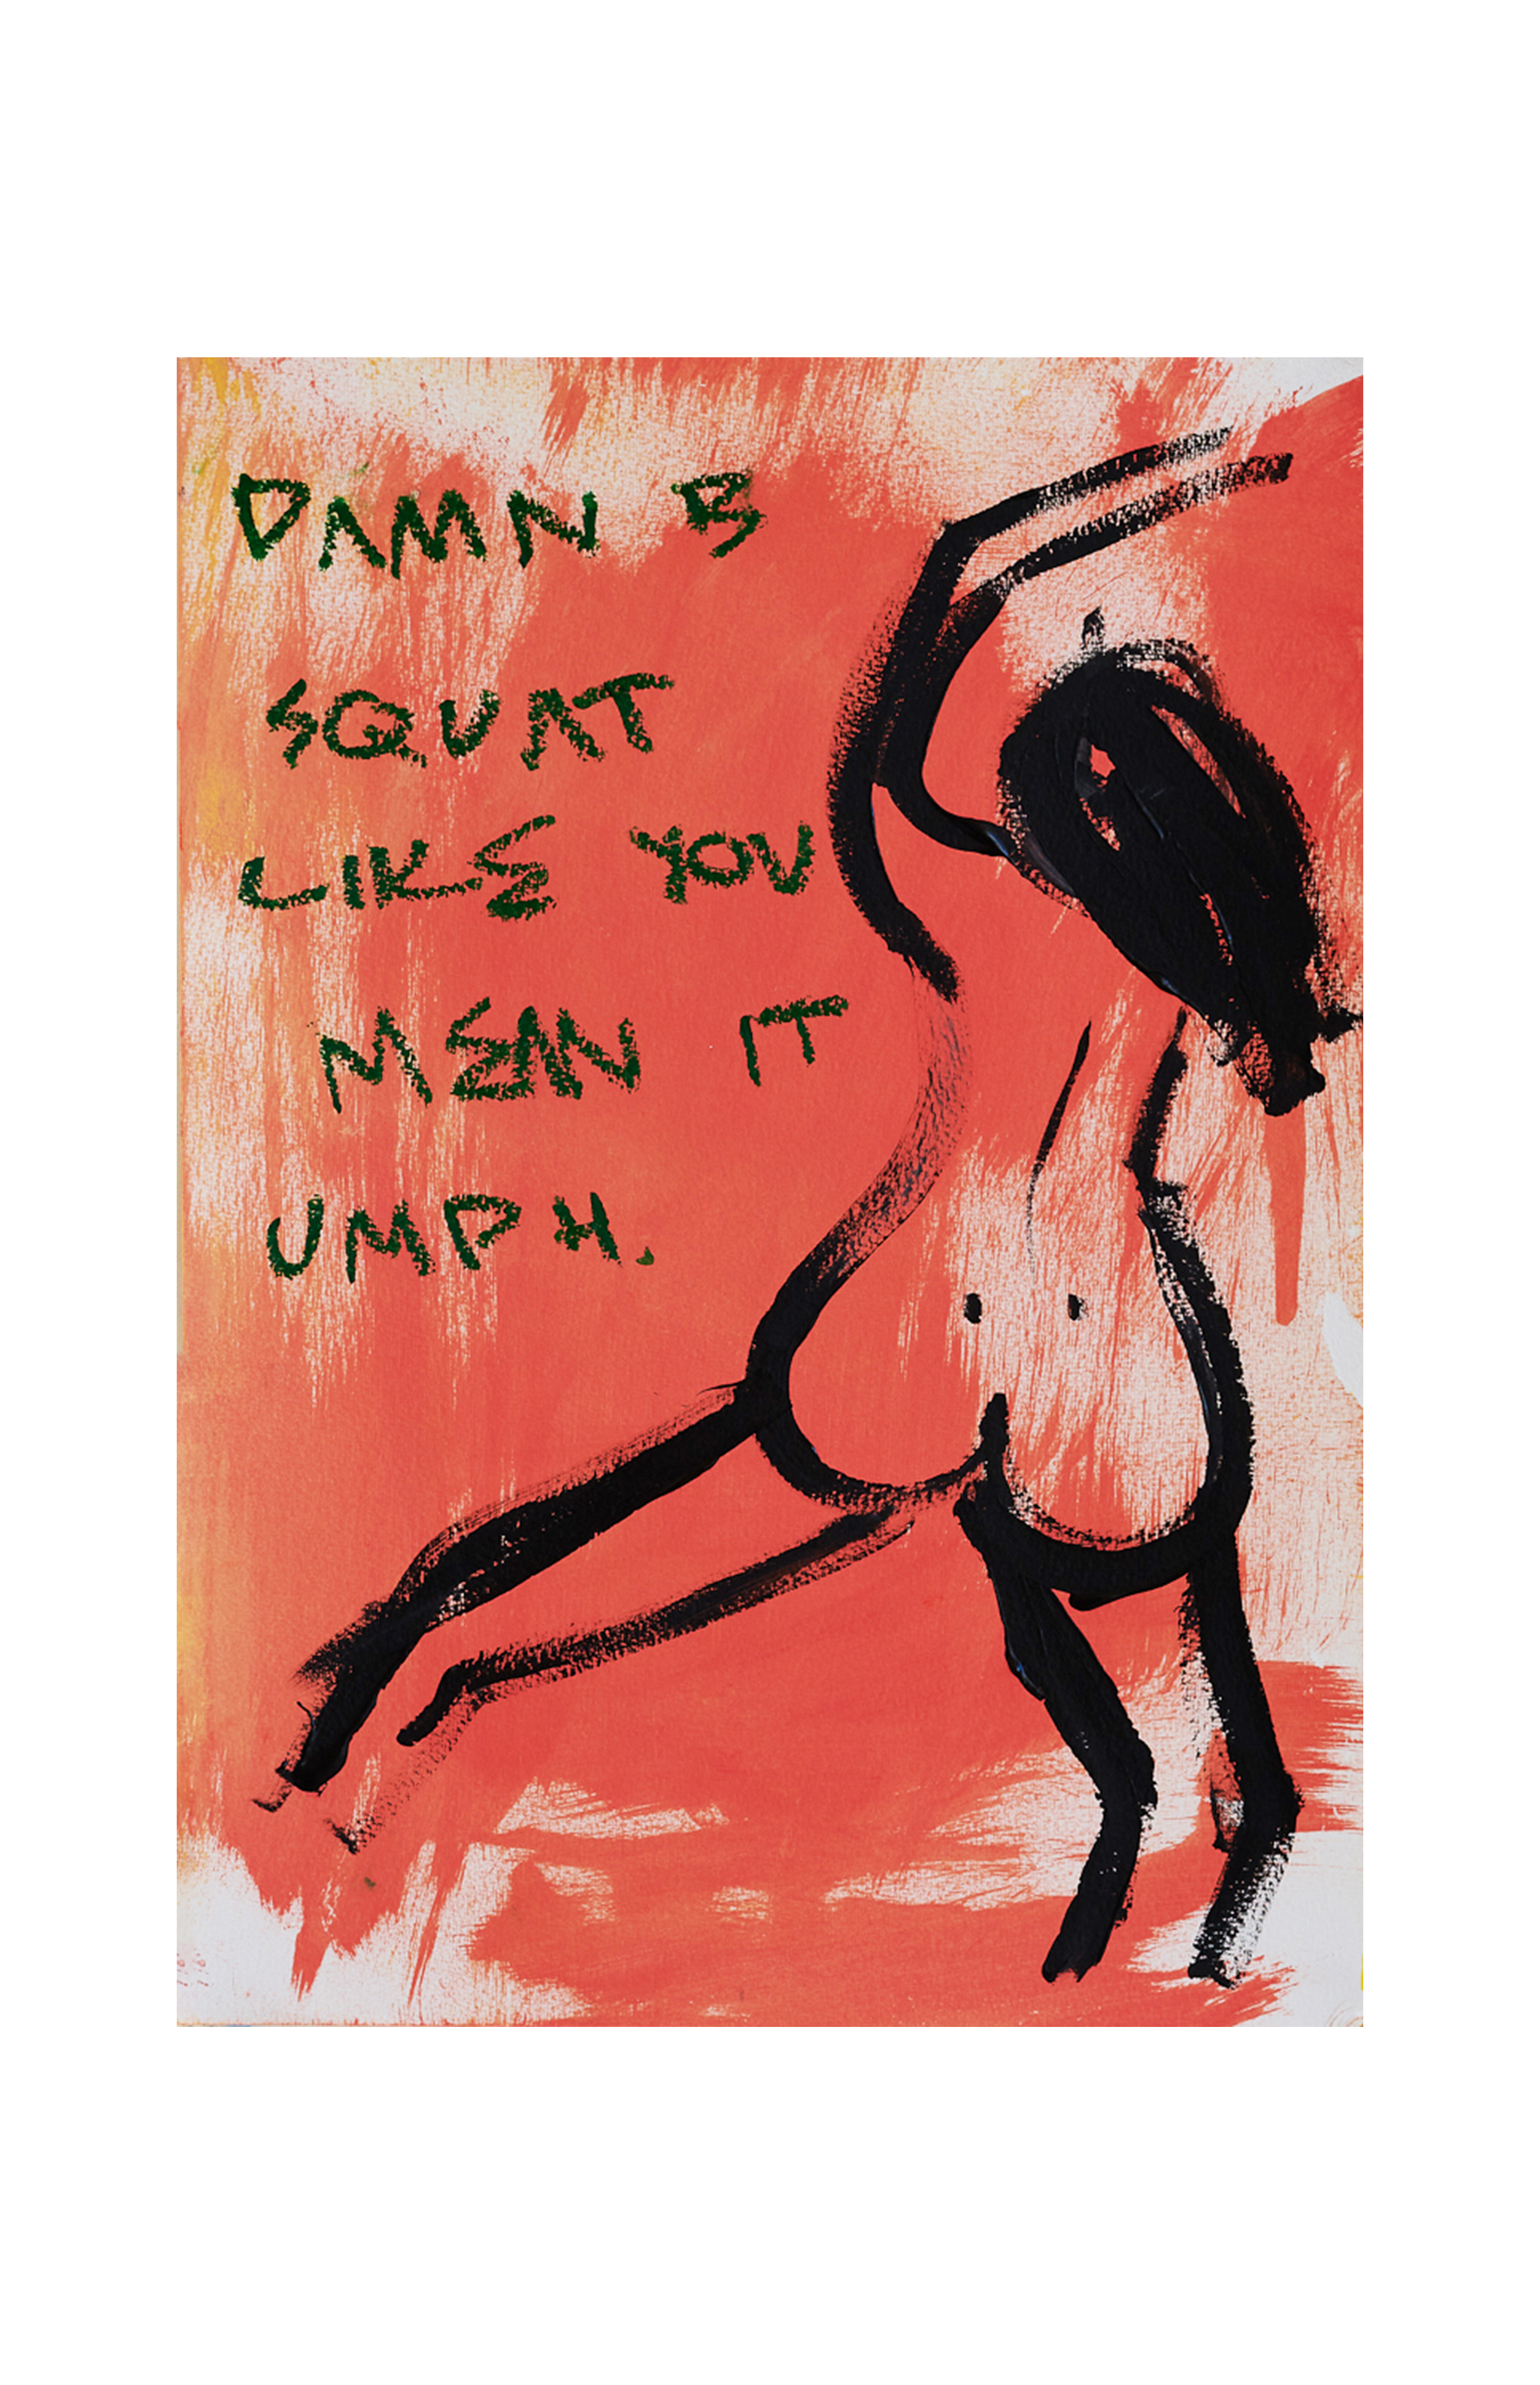 Marisa Mu At the above Your Booty Makes Me Go Umph 29 7cm x 42cm acrylic and oil pastels on coldpress paper White